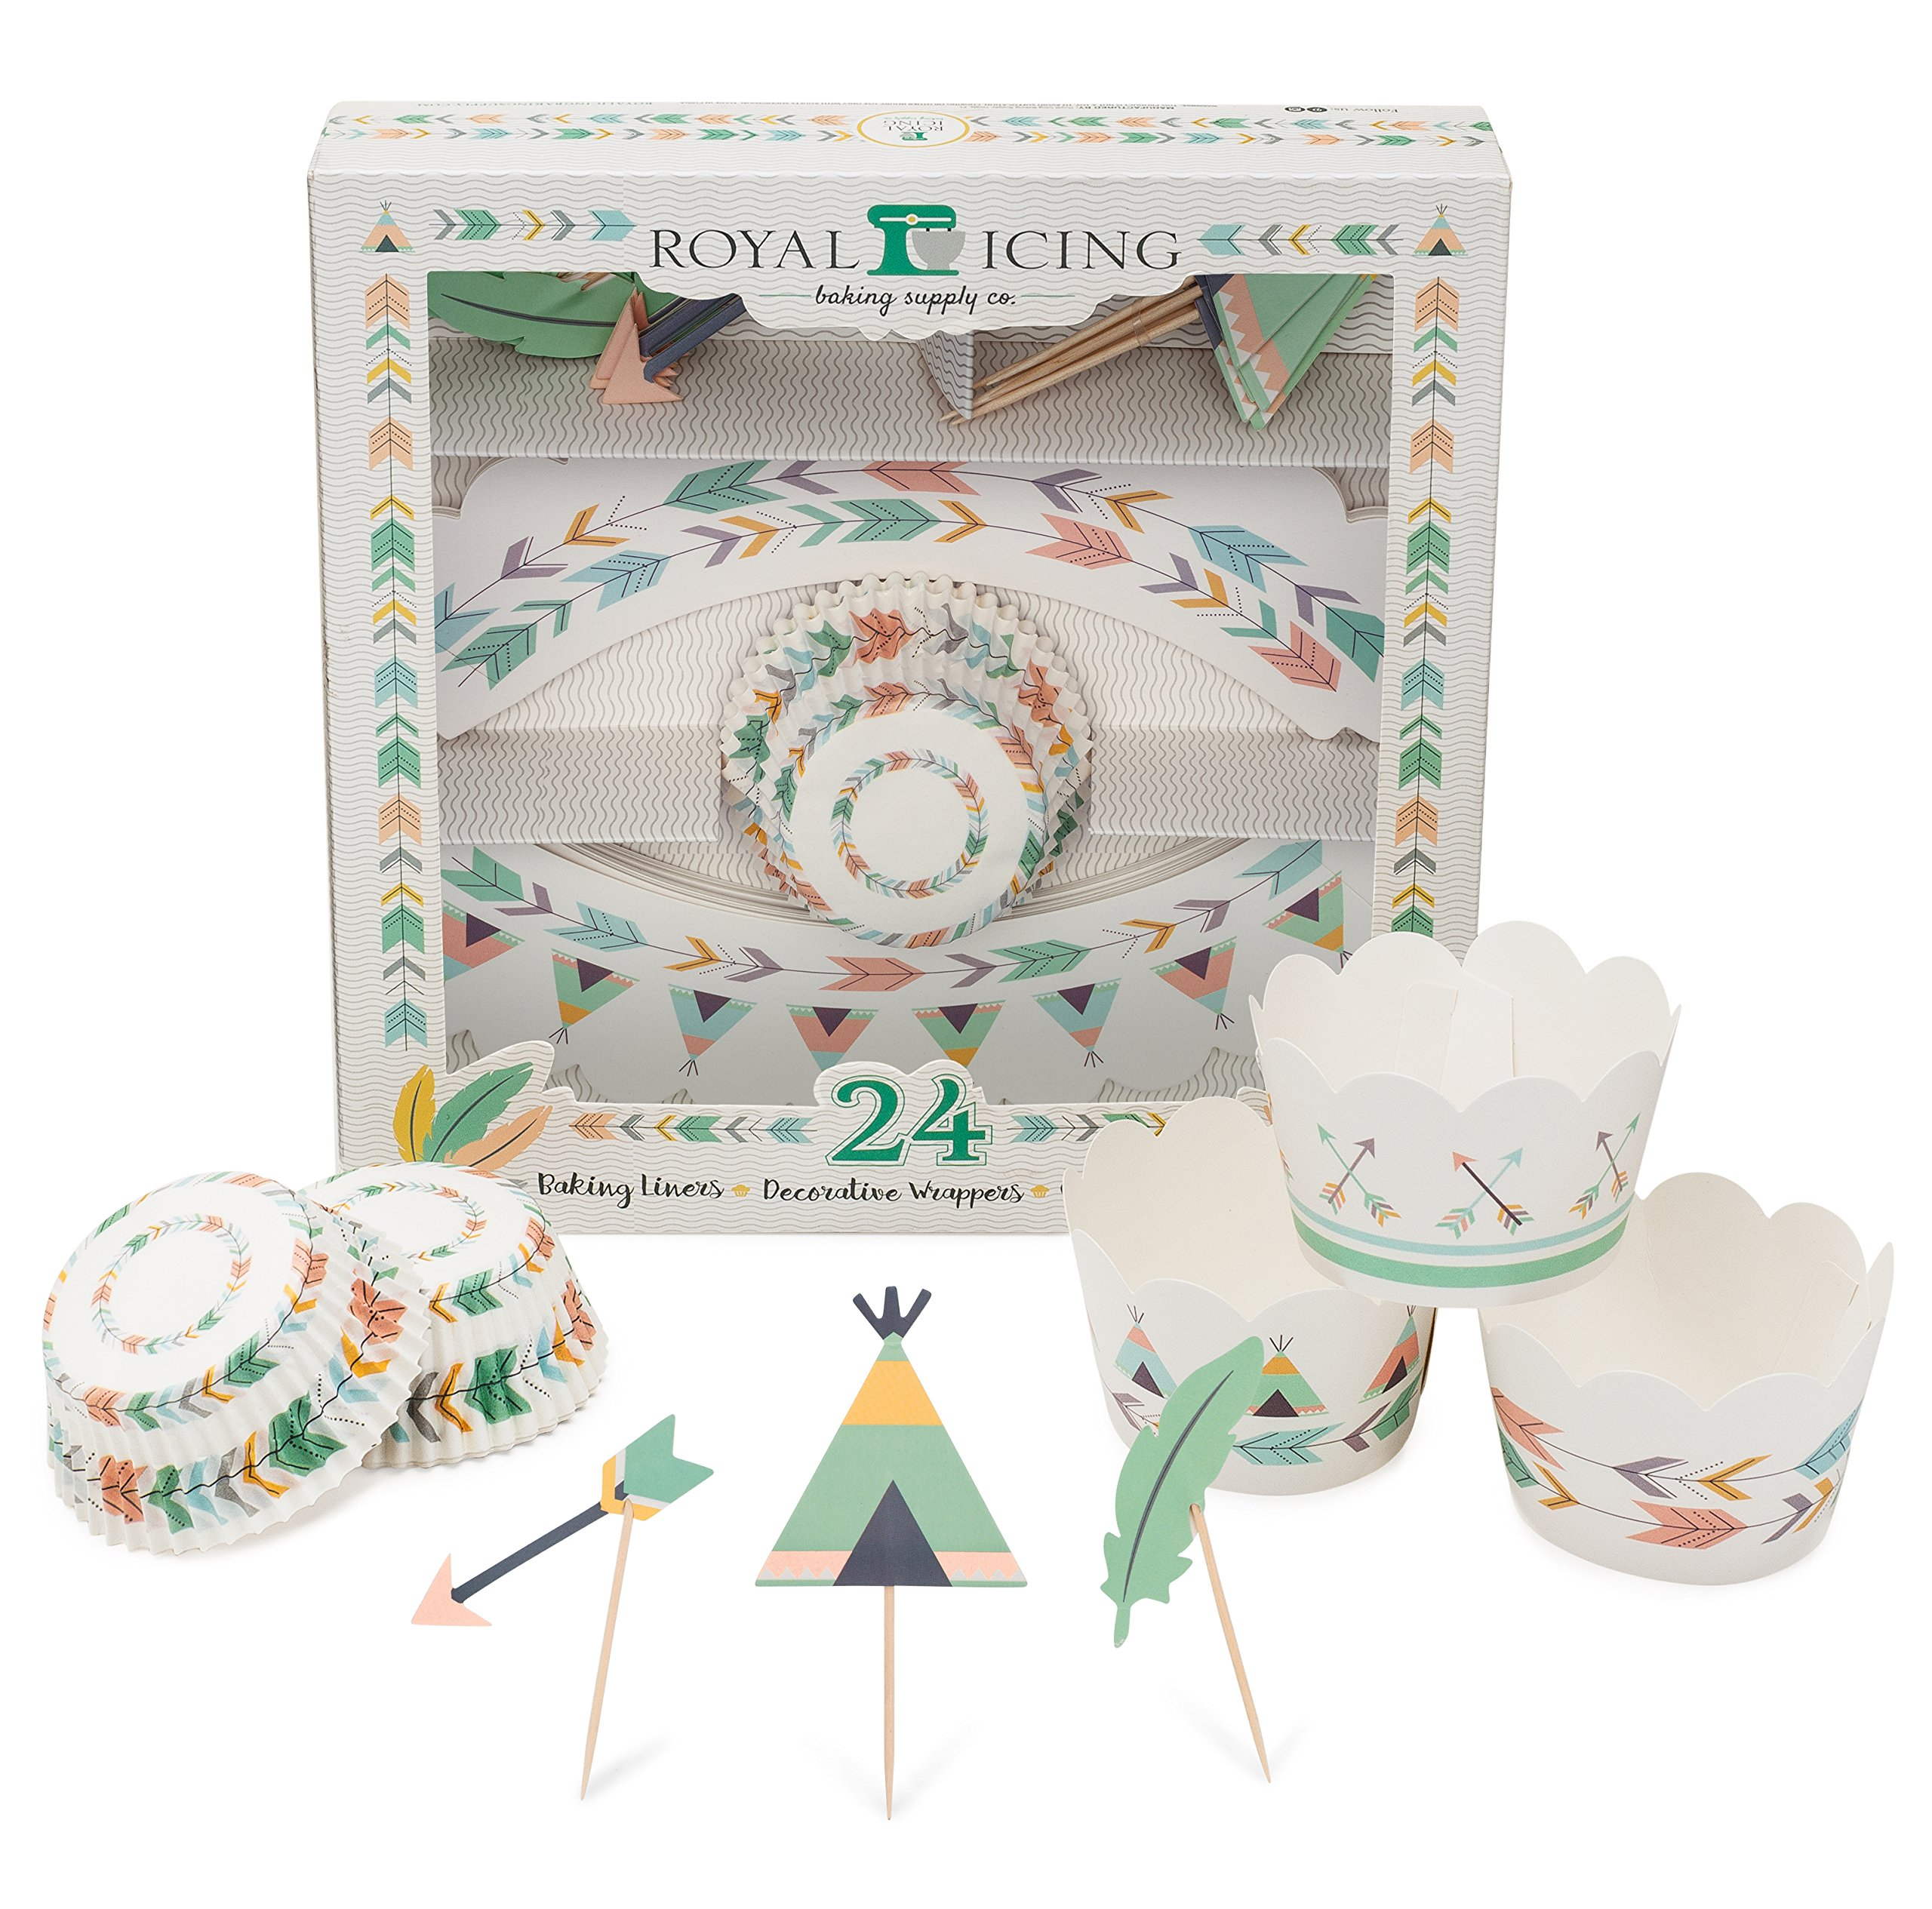 Boho Party Cupcake Decorating Kit 72-Pieces Includes Arrow, Teepee, and Feather Toppers, Tribal and Bohemian Wrappers, and Wild One Baking Liners